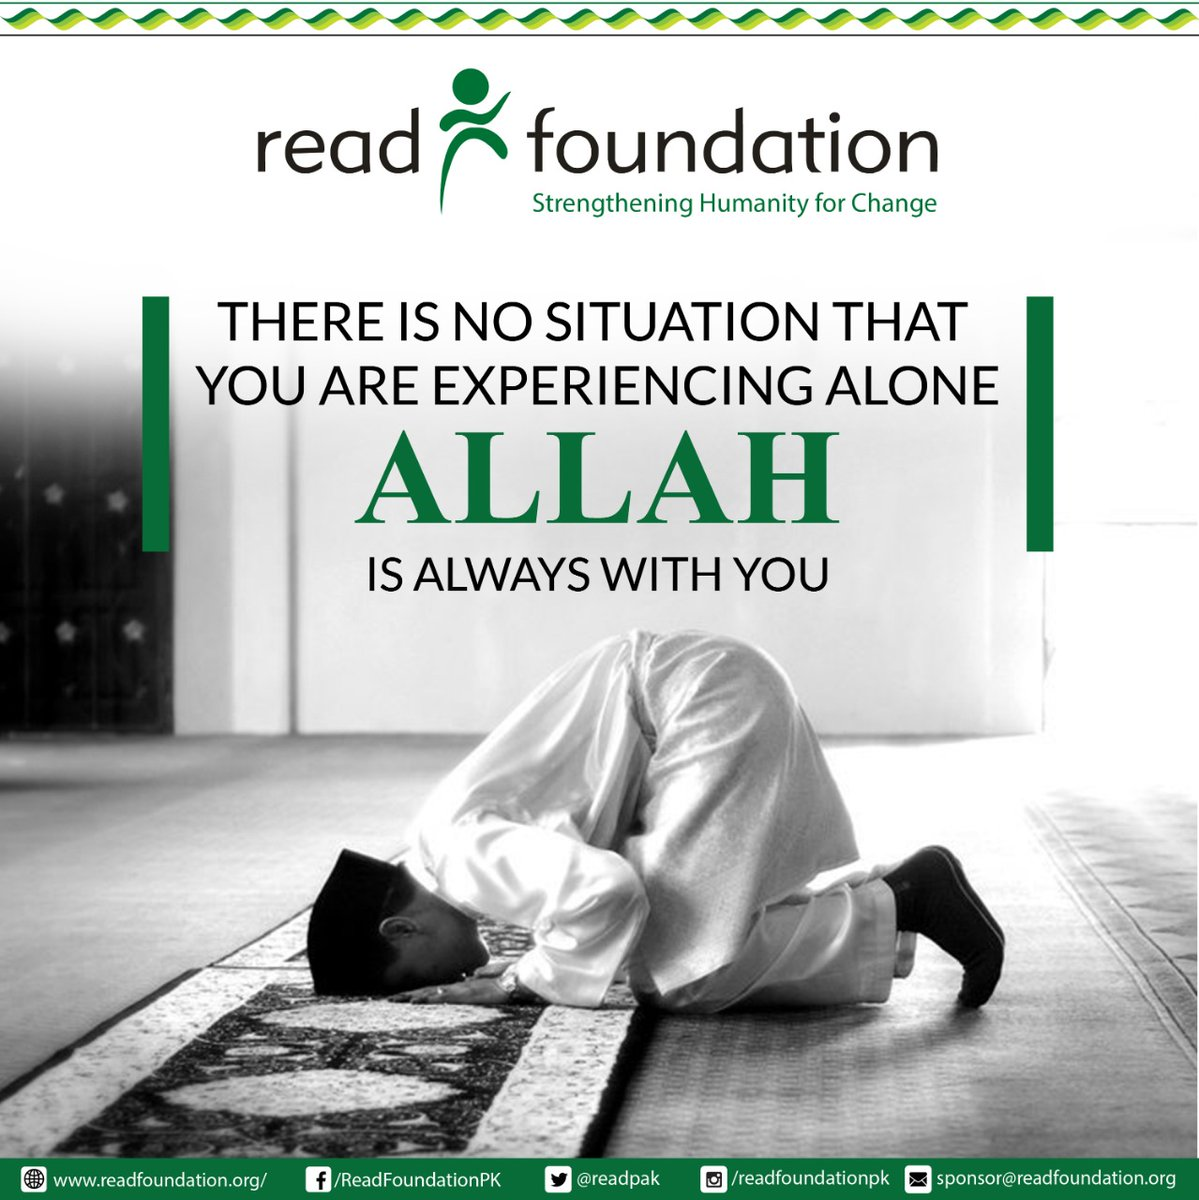 Always remember :There is no situation that you are experiencing alone, ' Allah ' is always with you. https://t.co/PhL8Givw5b